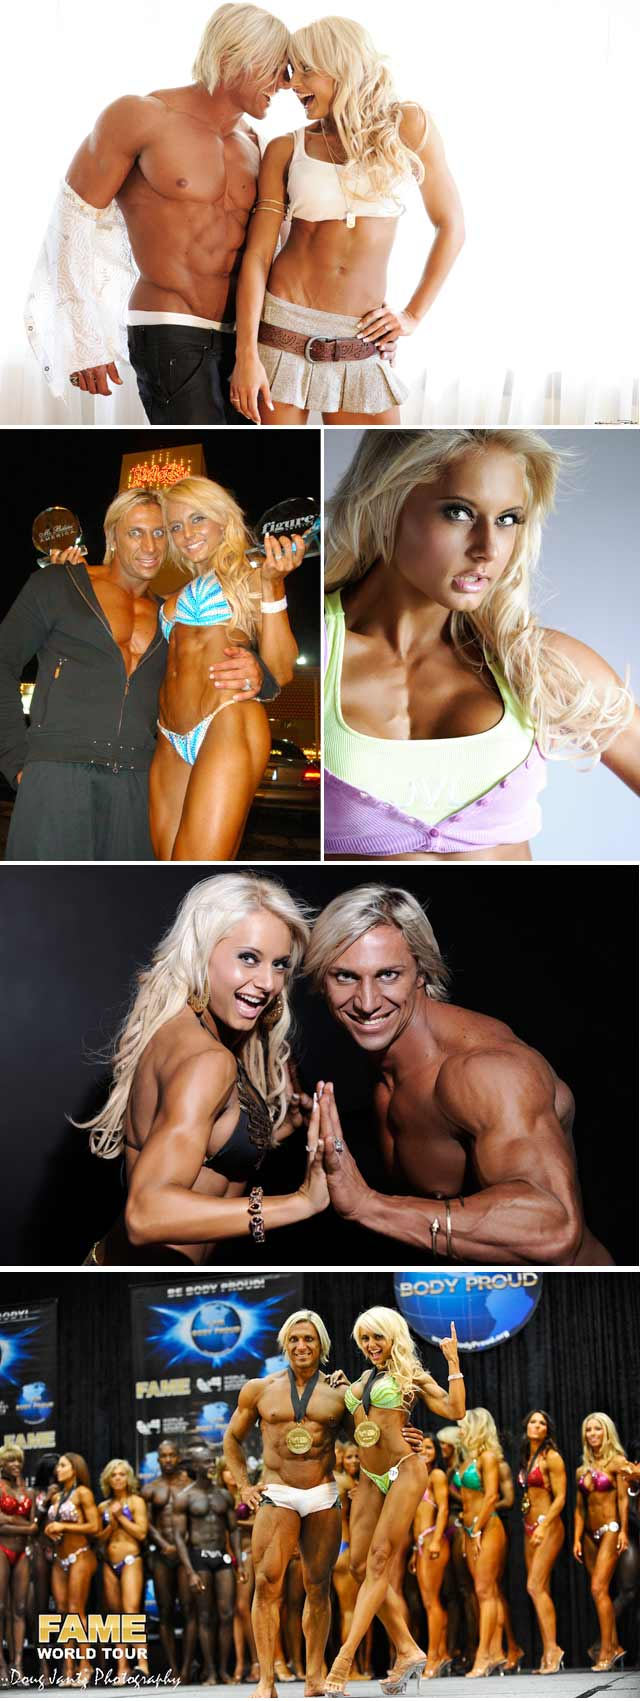 Top Billing interviews fitness model Angelique Van Der Linde